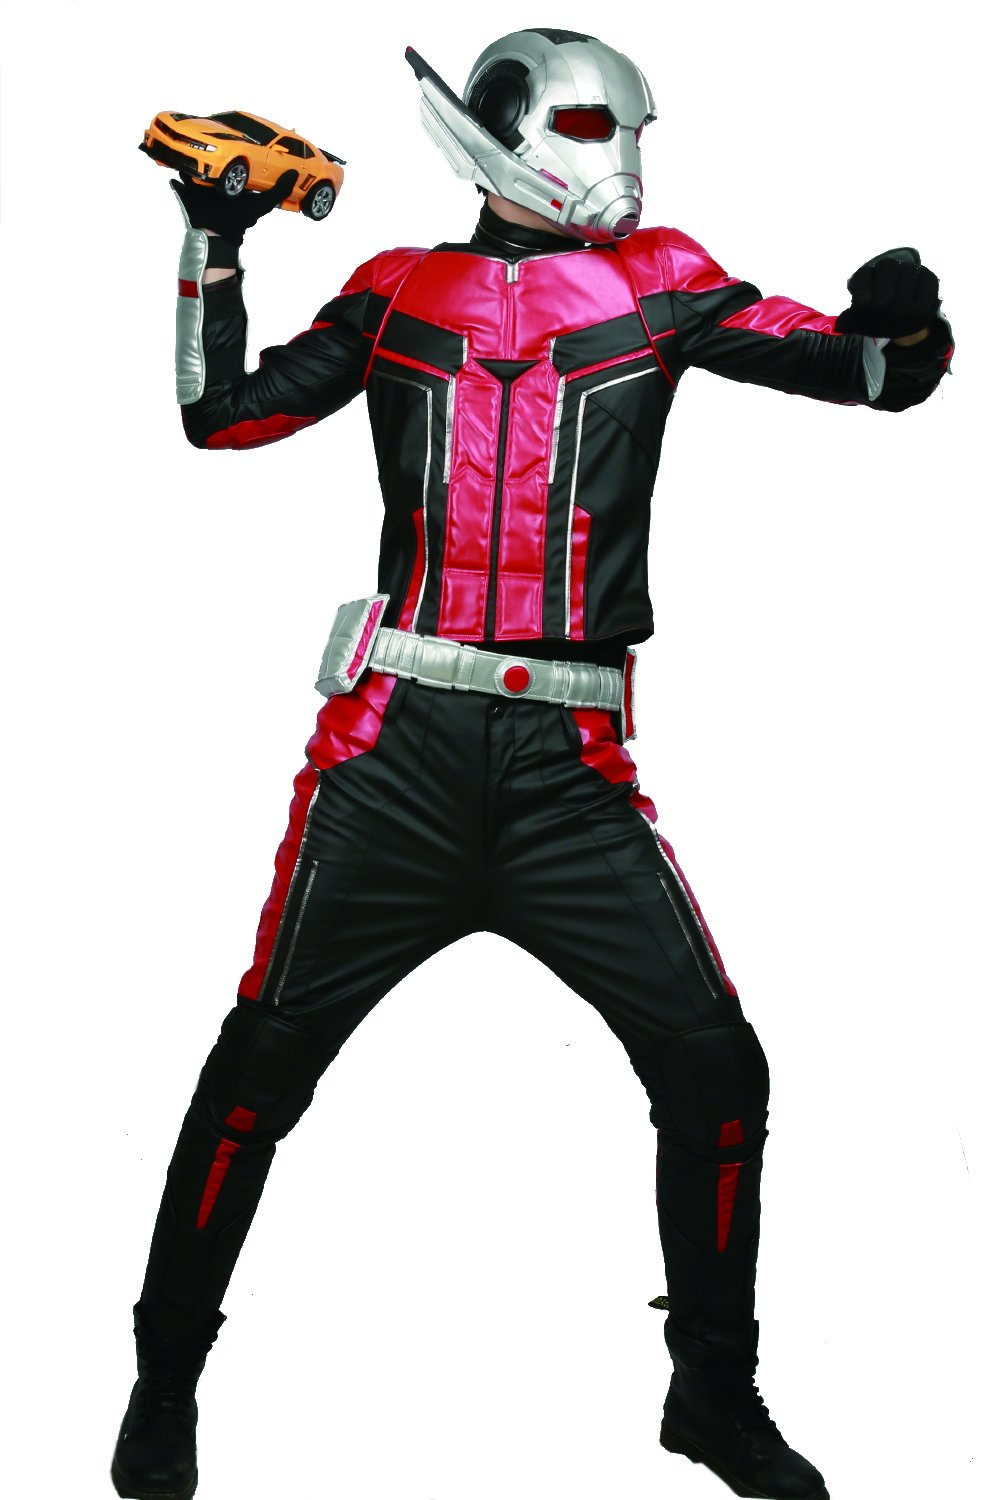 xcoser Ant Man Costume with Helmet Deluxe PU Cosplay Outfit Belt Gloves Full Suit Halloween Custom Made by xcoser (Image #7)